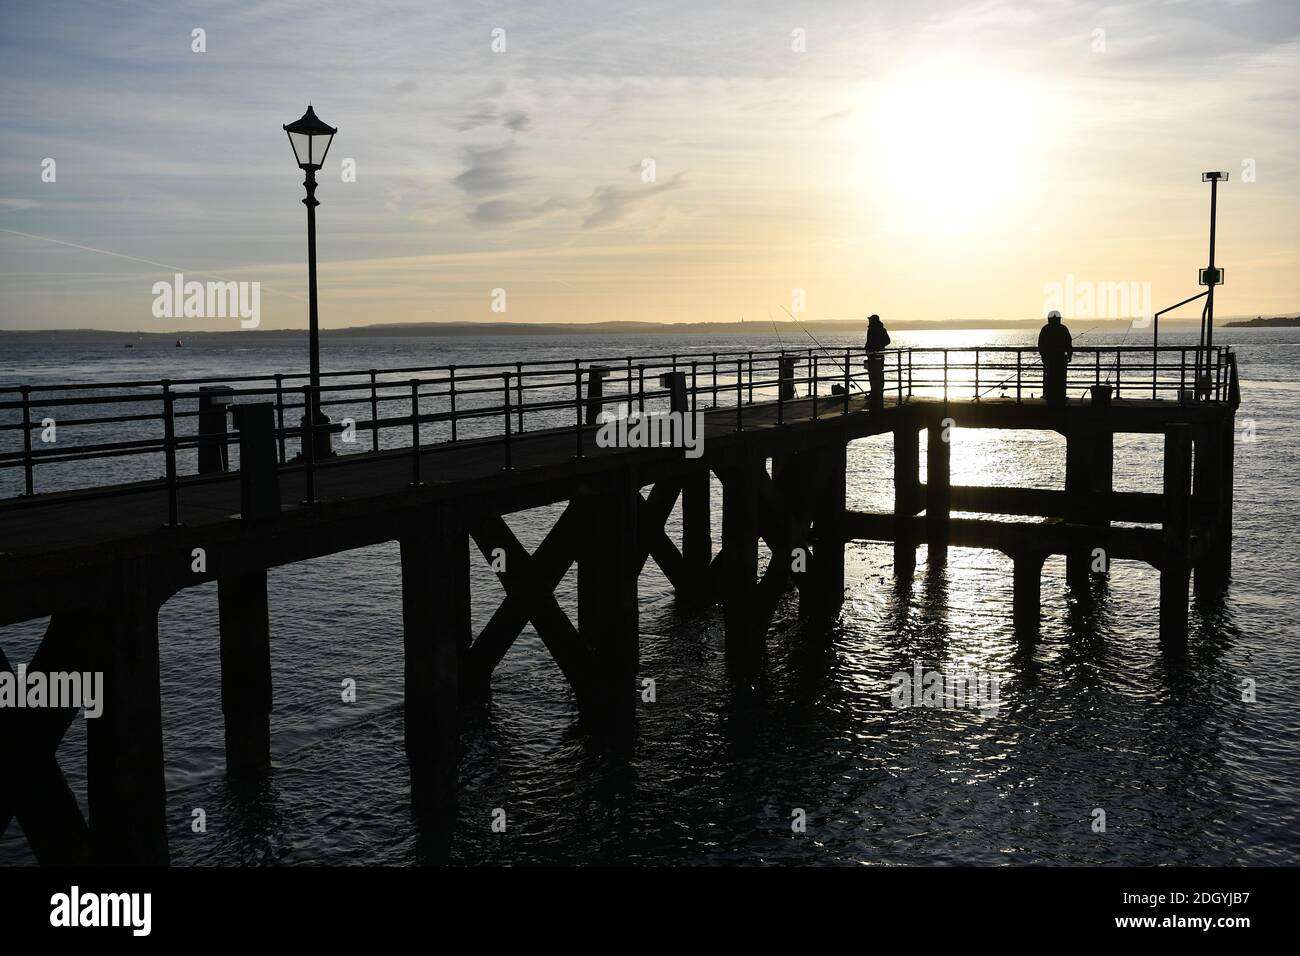 GV's and Stock of Old Town, Portsmouth, Hampshire, Mittwoch, 2. Dezember 2020. Stockfoto